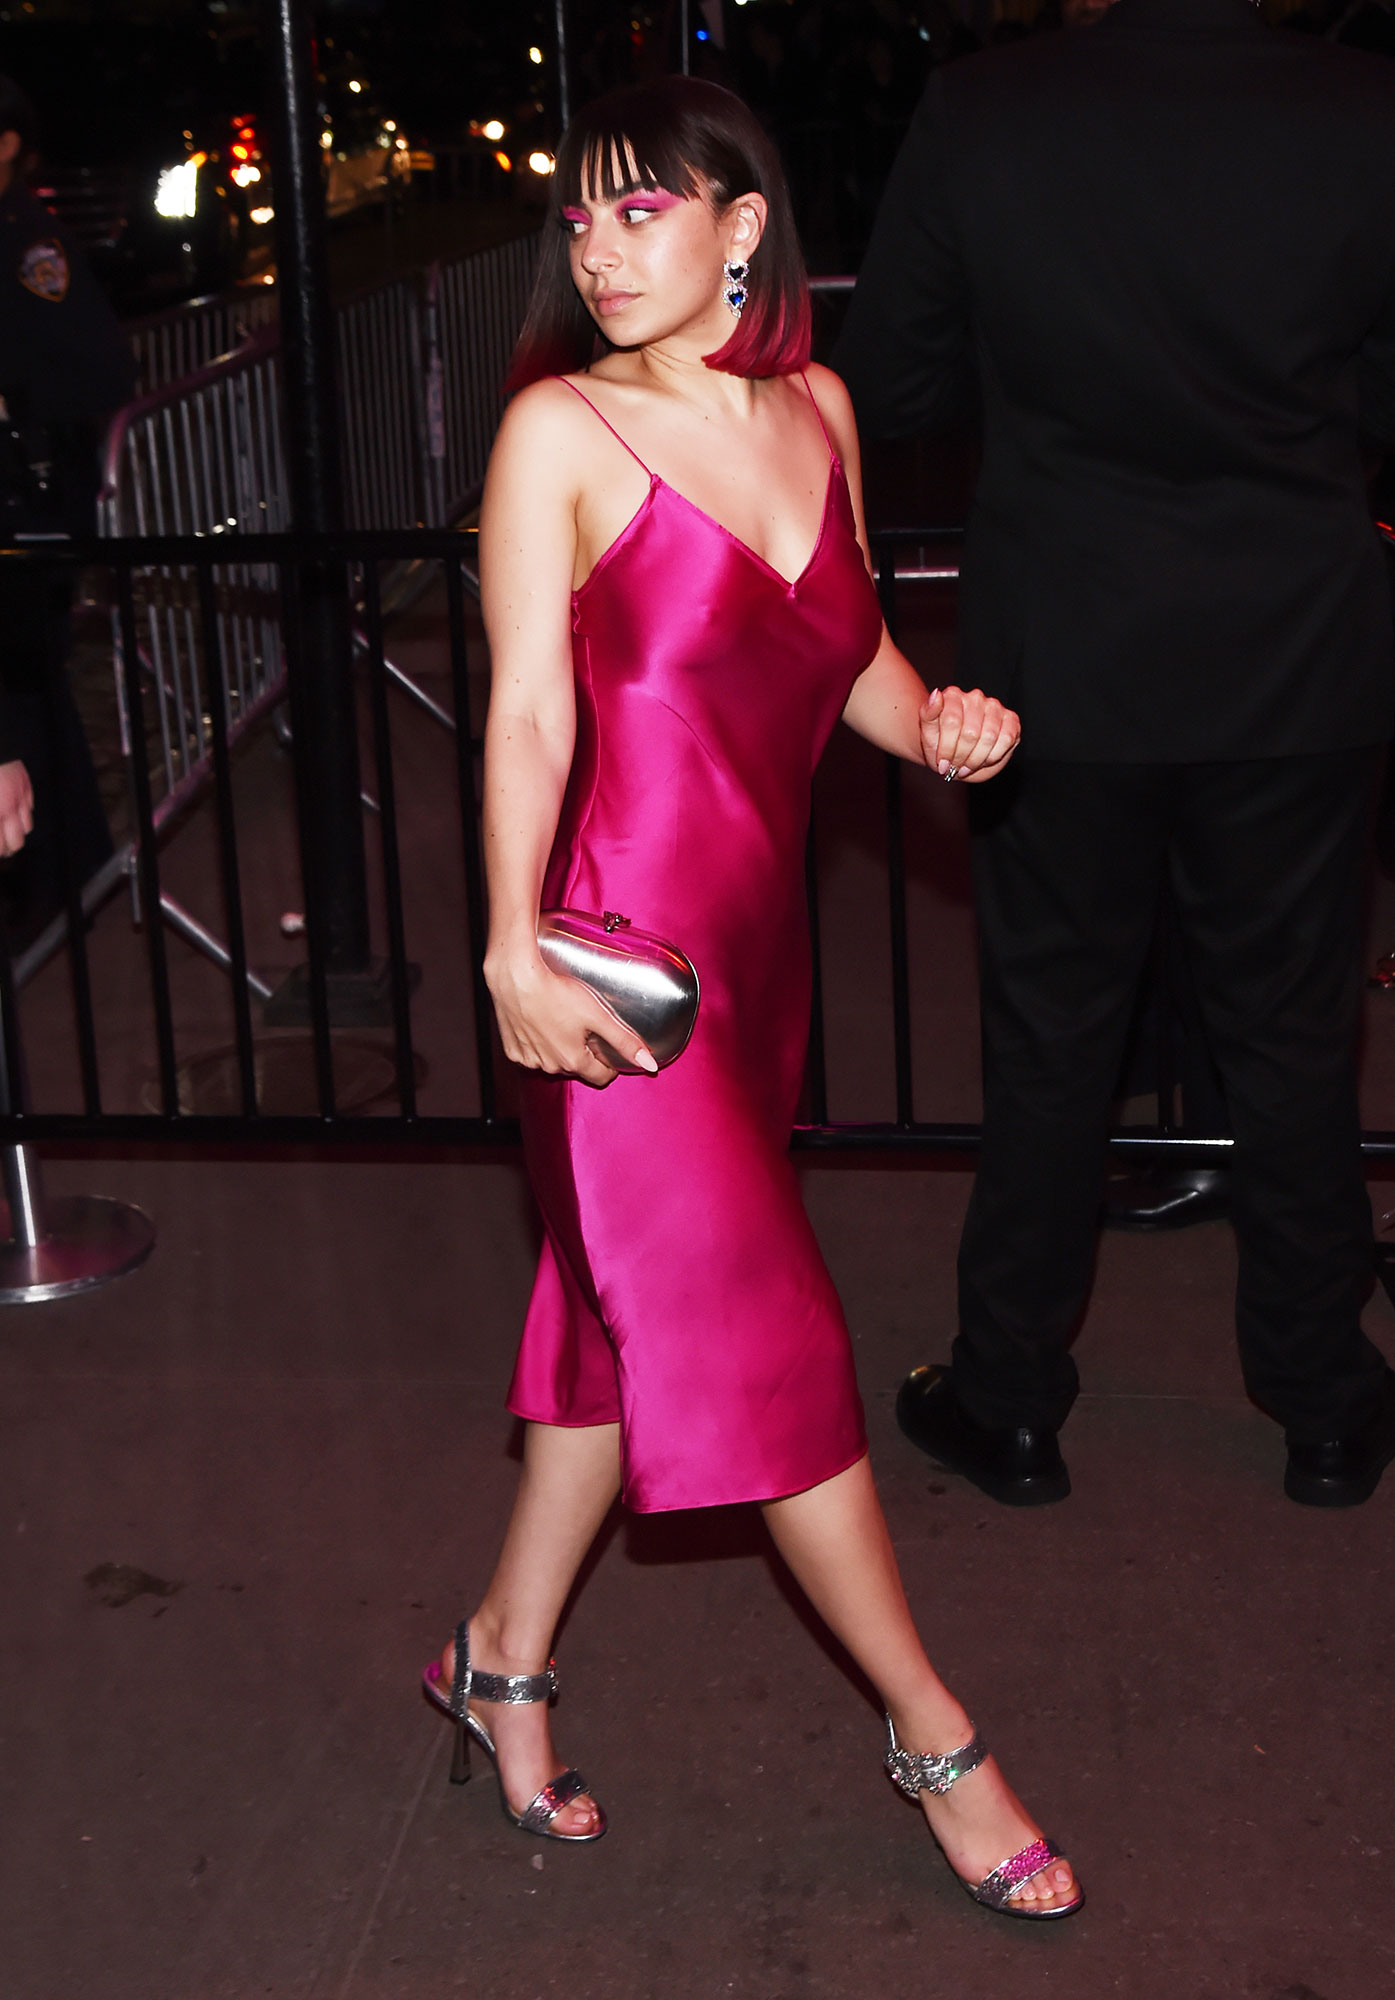 """Charli XCX after party met gala 2019 - The """"Boys"""" singer wore an adorable pink slip dress that looked all kinds of dance-floor ready."""